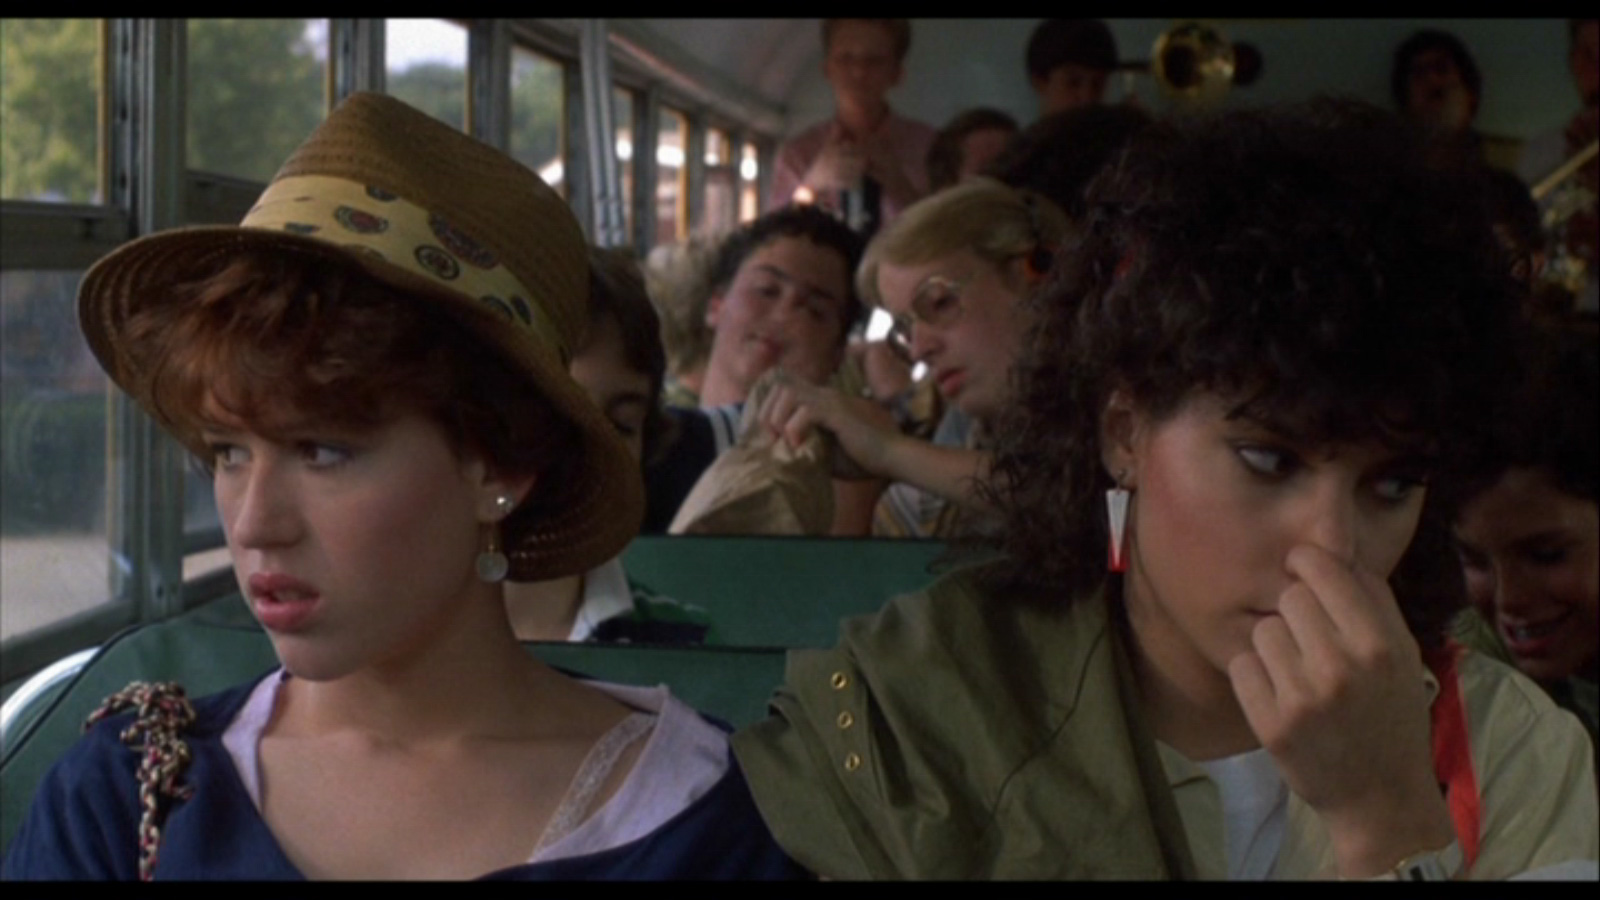 dating candles Michael schoeffling dating history, 2018, 2017, list of michael schoeffling  i fell in love with your character in 16 candles and all over again with al in wild.